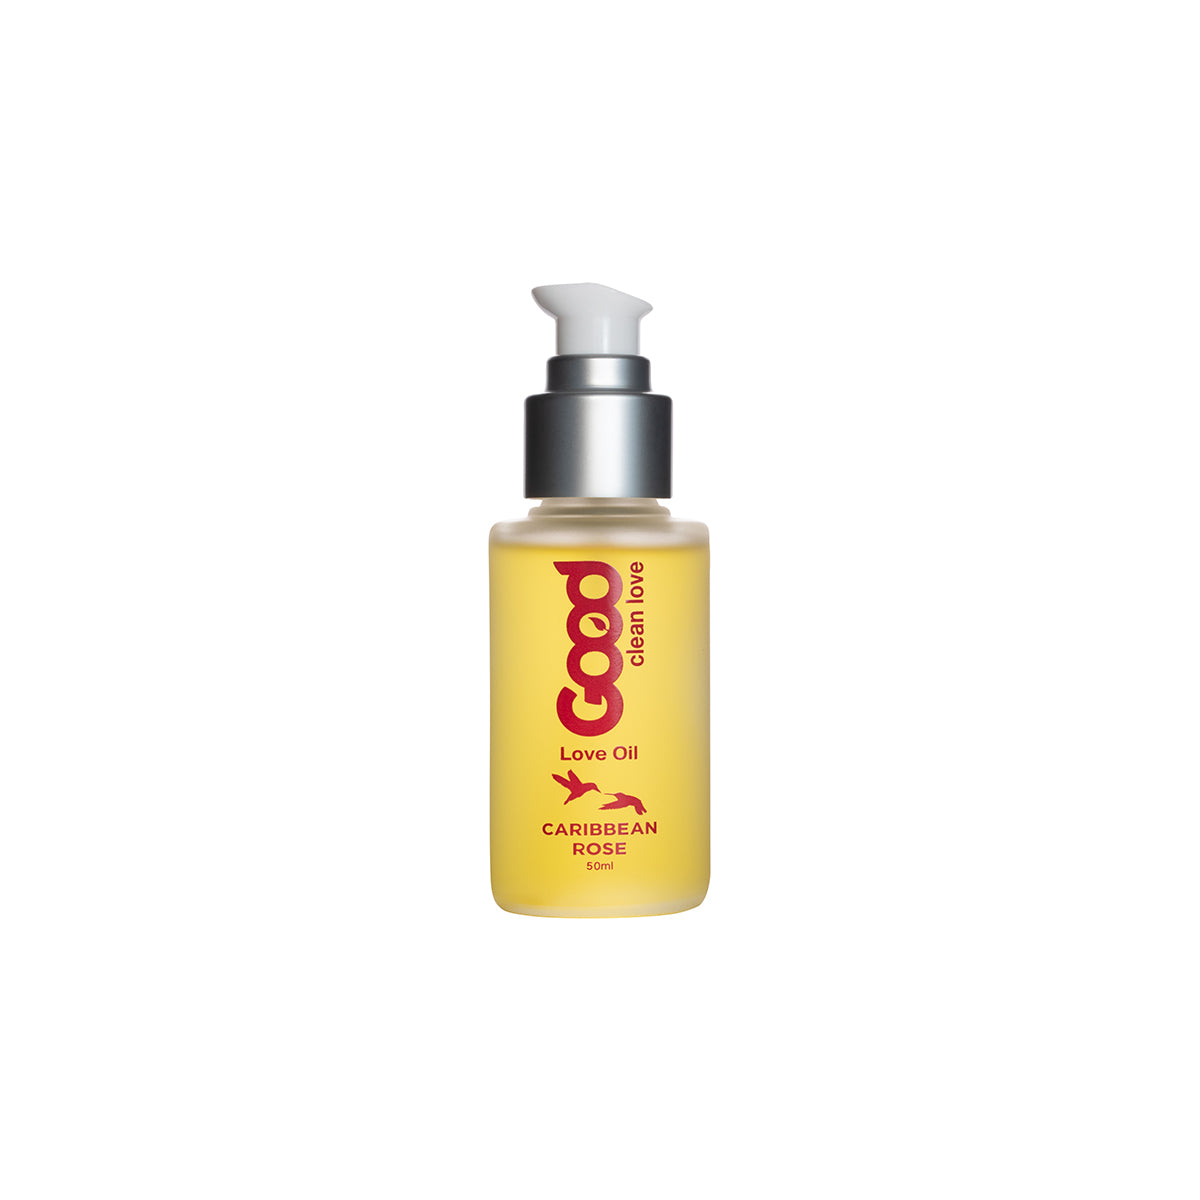 Good Clean Love Oil 50ml - Caribbean Rose [87009]